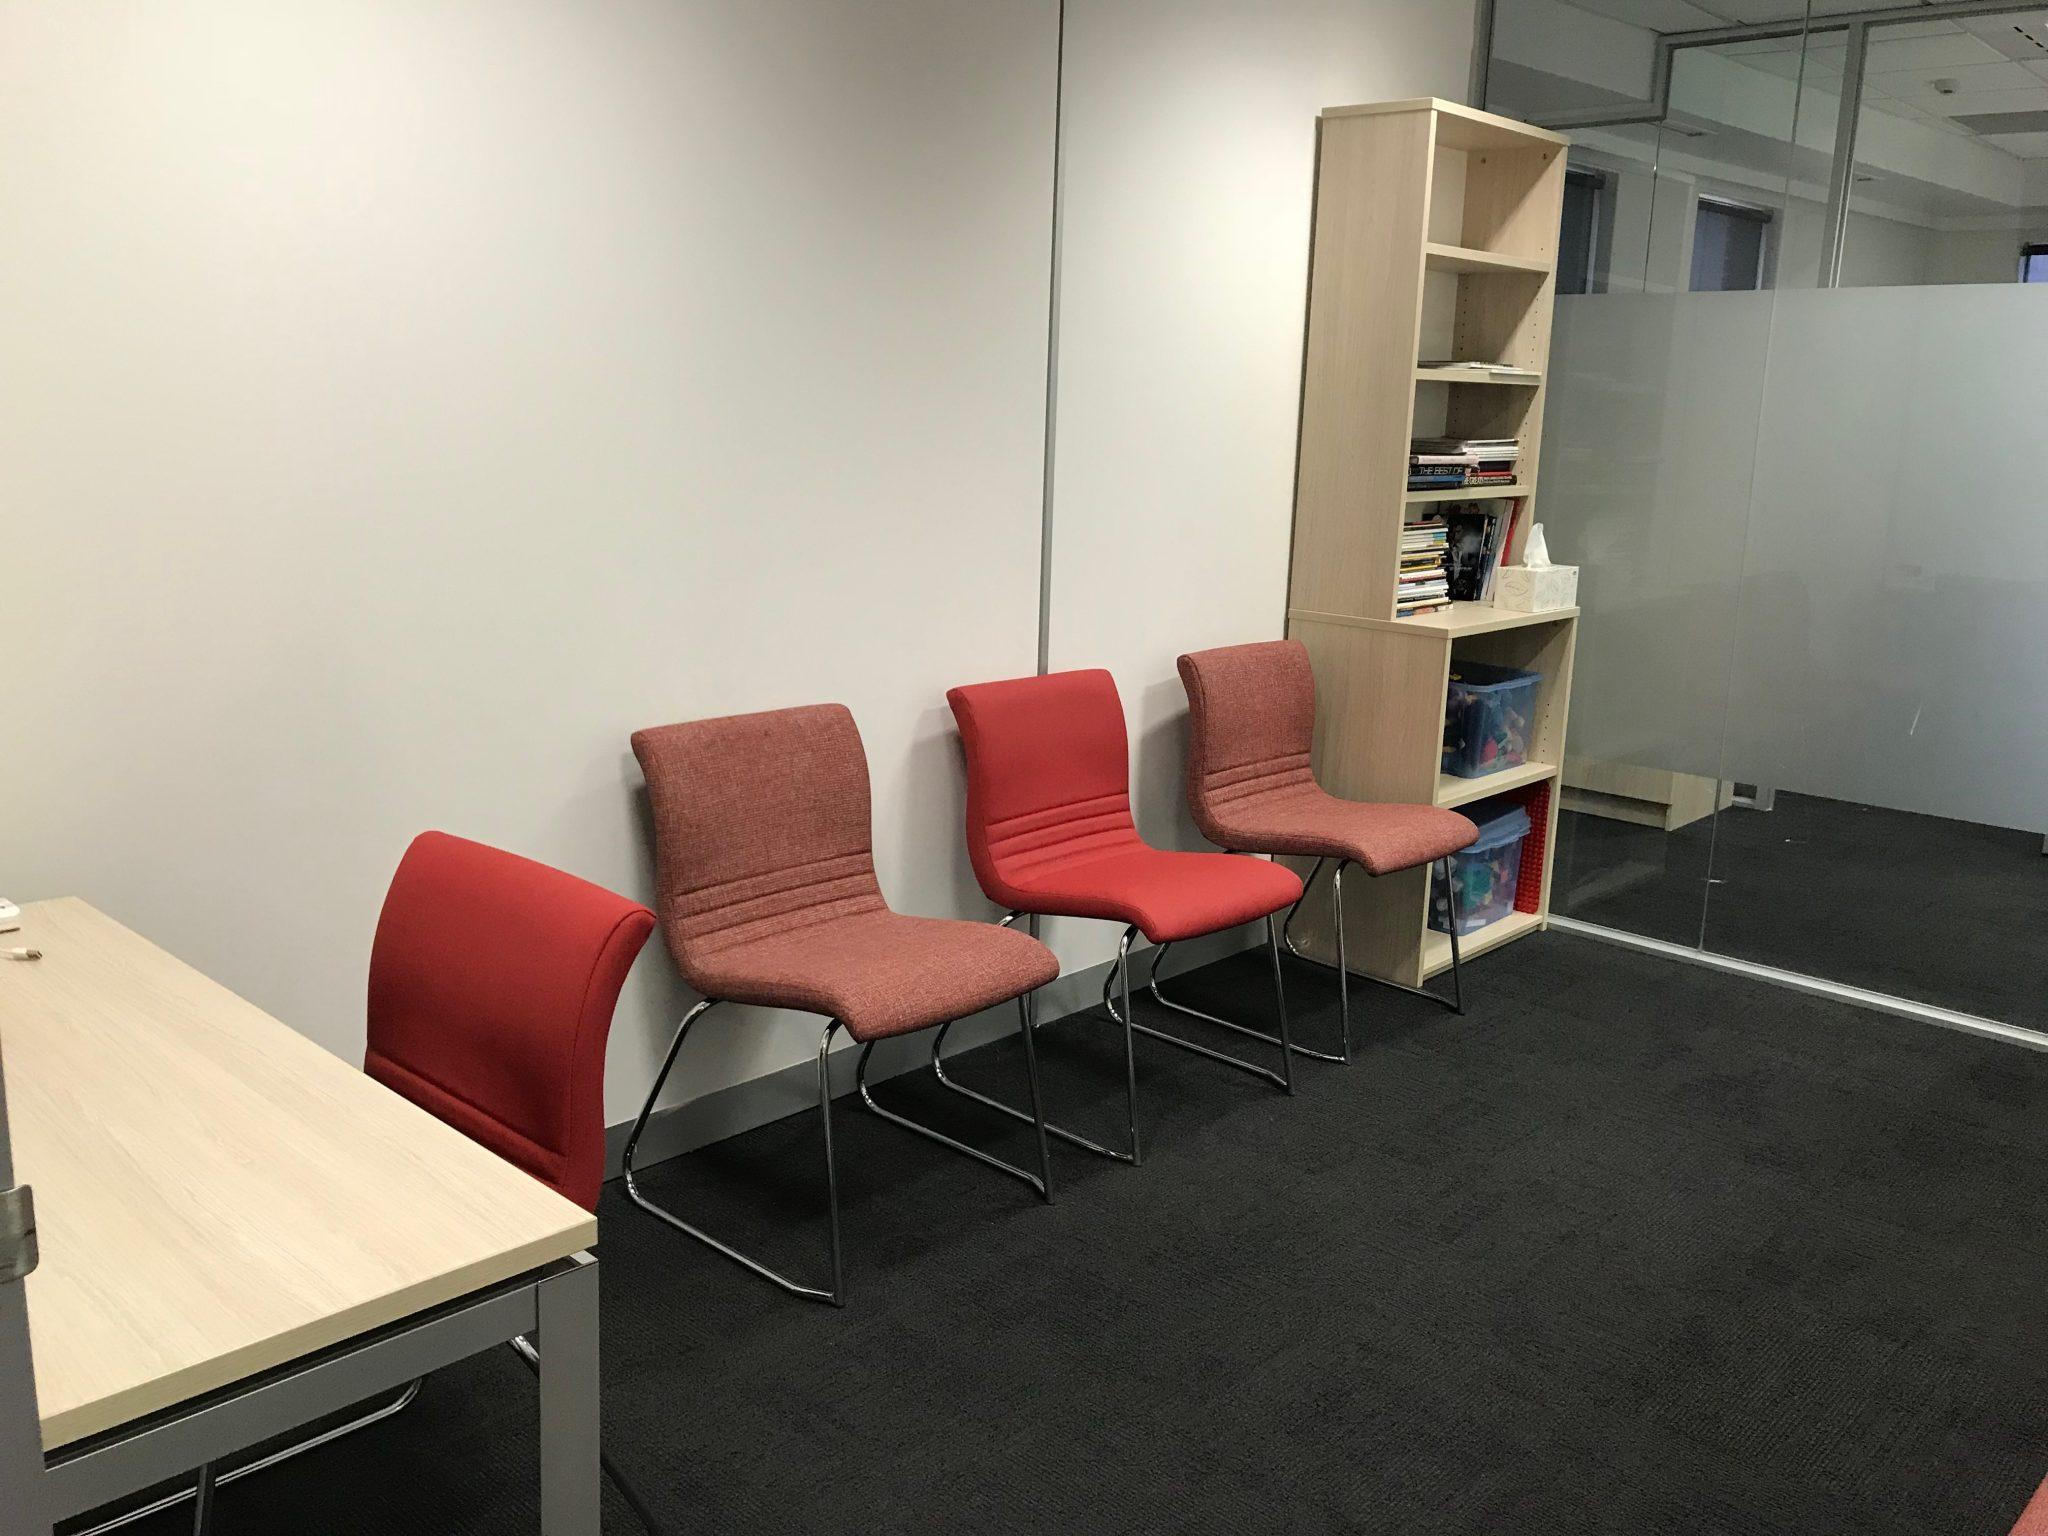 medical waiting room with waiting room chairs in red upholstery